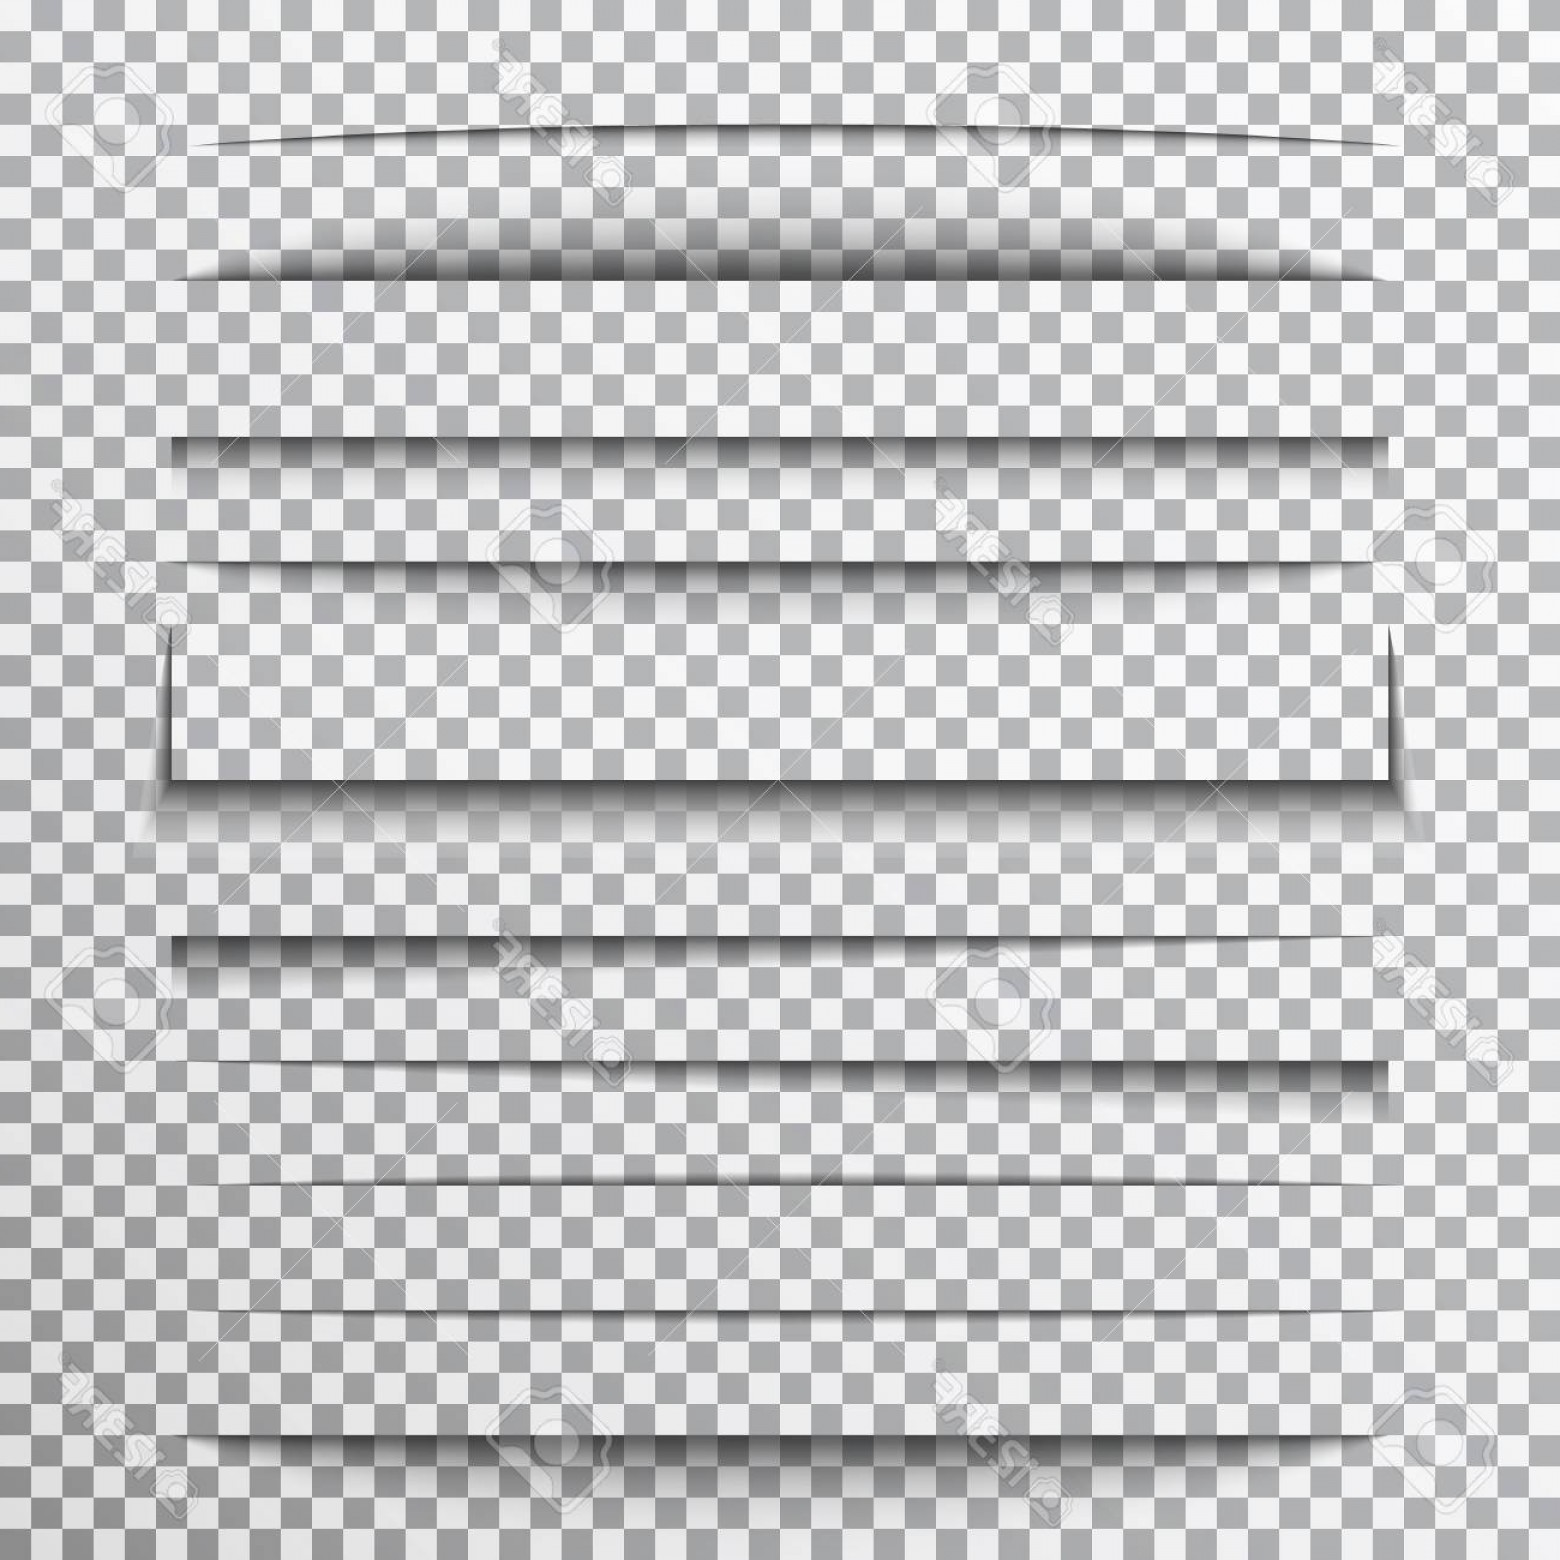 Vector Line Dividers Transparent Backgrounds: Photostock Vector Paper Shadows Set On Transparent Background Page Divider With Shadows Realistic Paper Shadow Line Ef